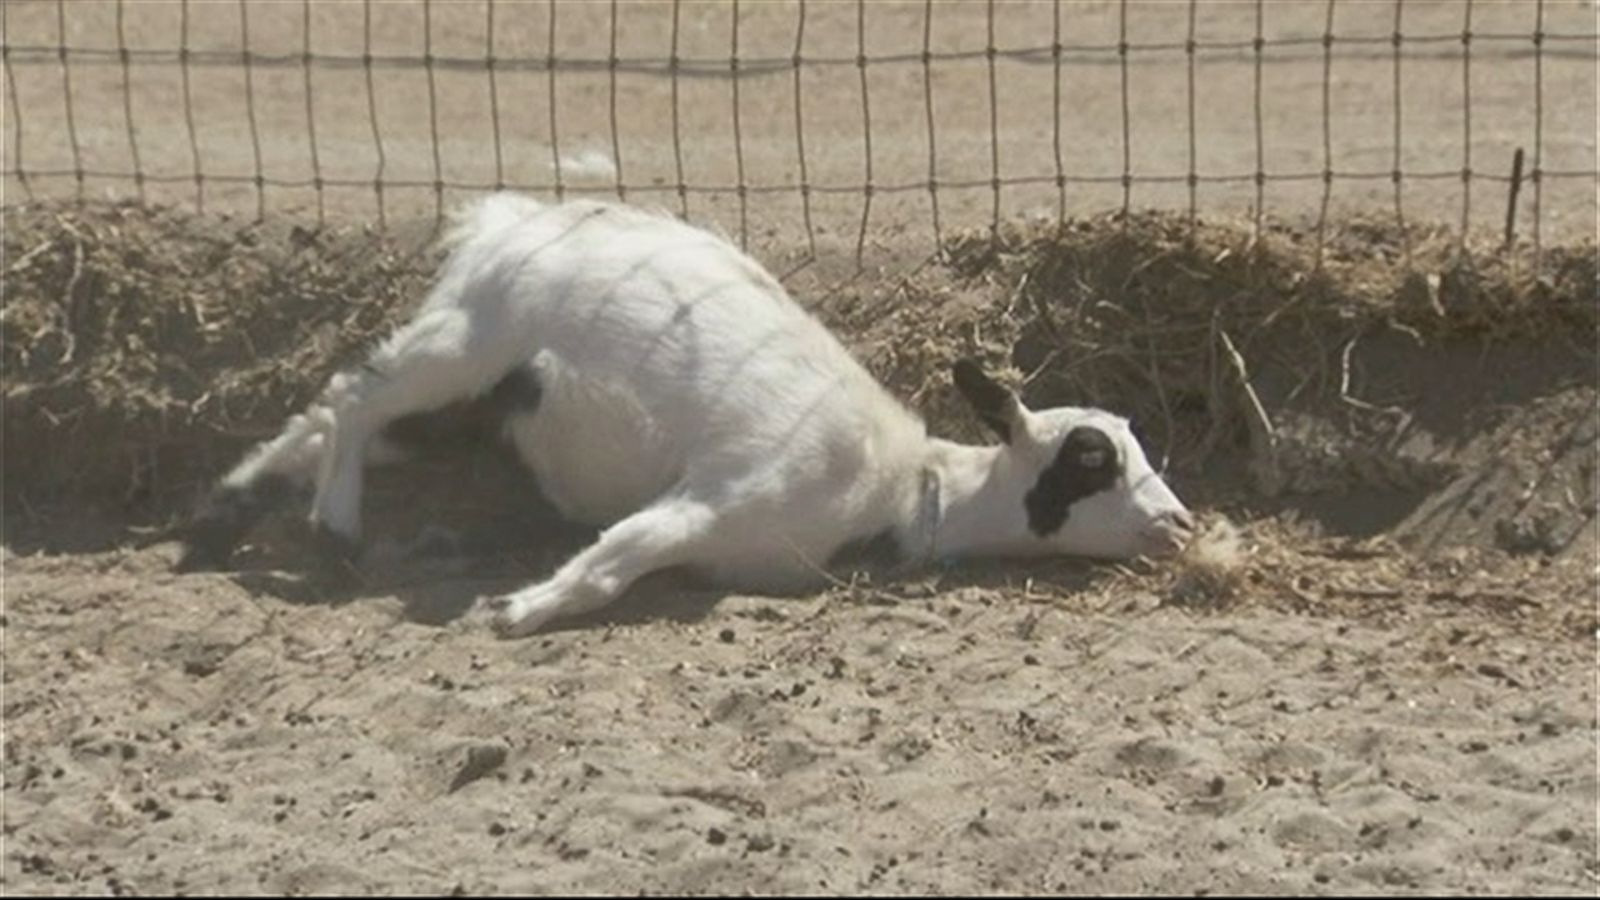 Why These Fainting Goats May Be the 'New Dogs for People